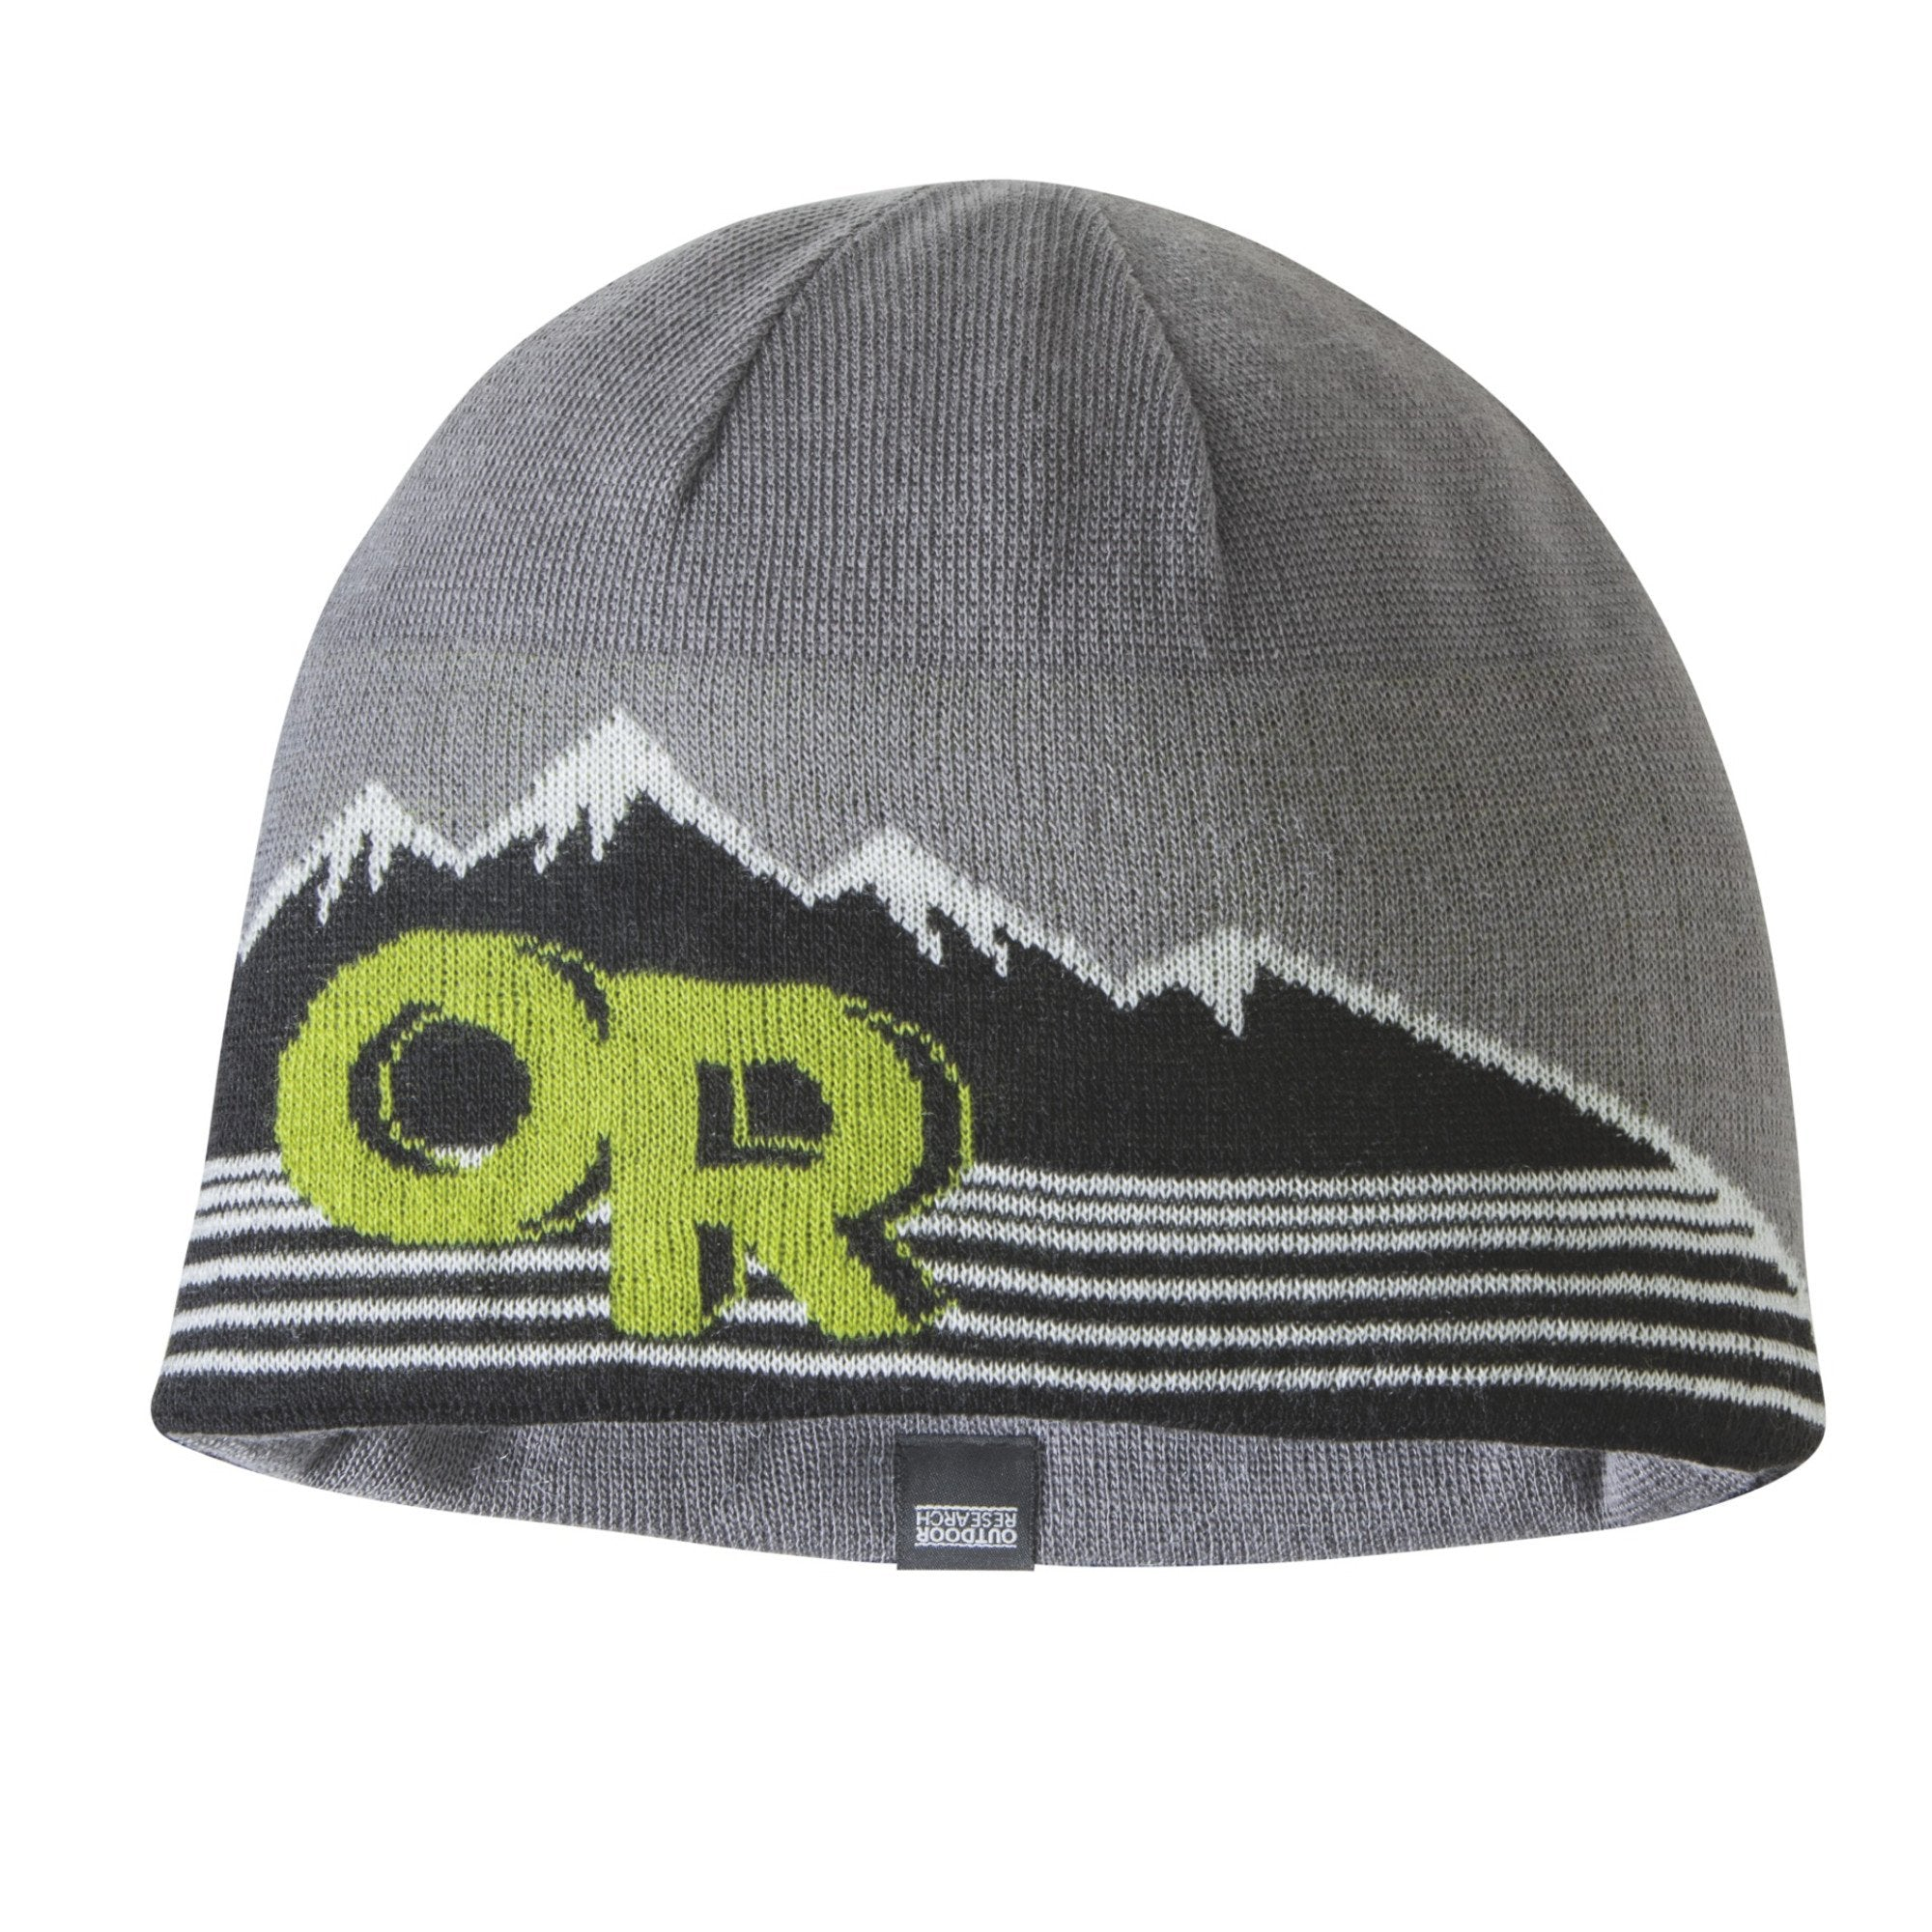 Outdoor Research Advocate Beanie